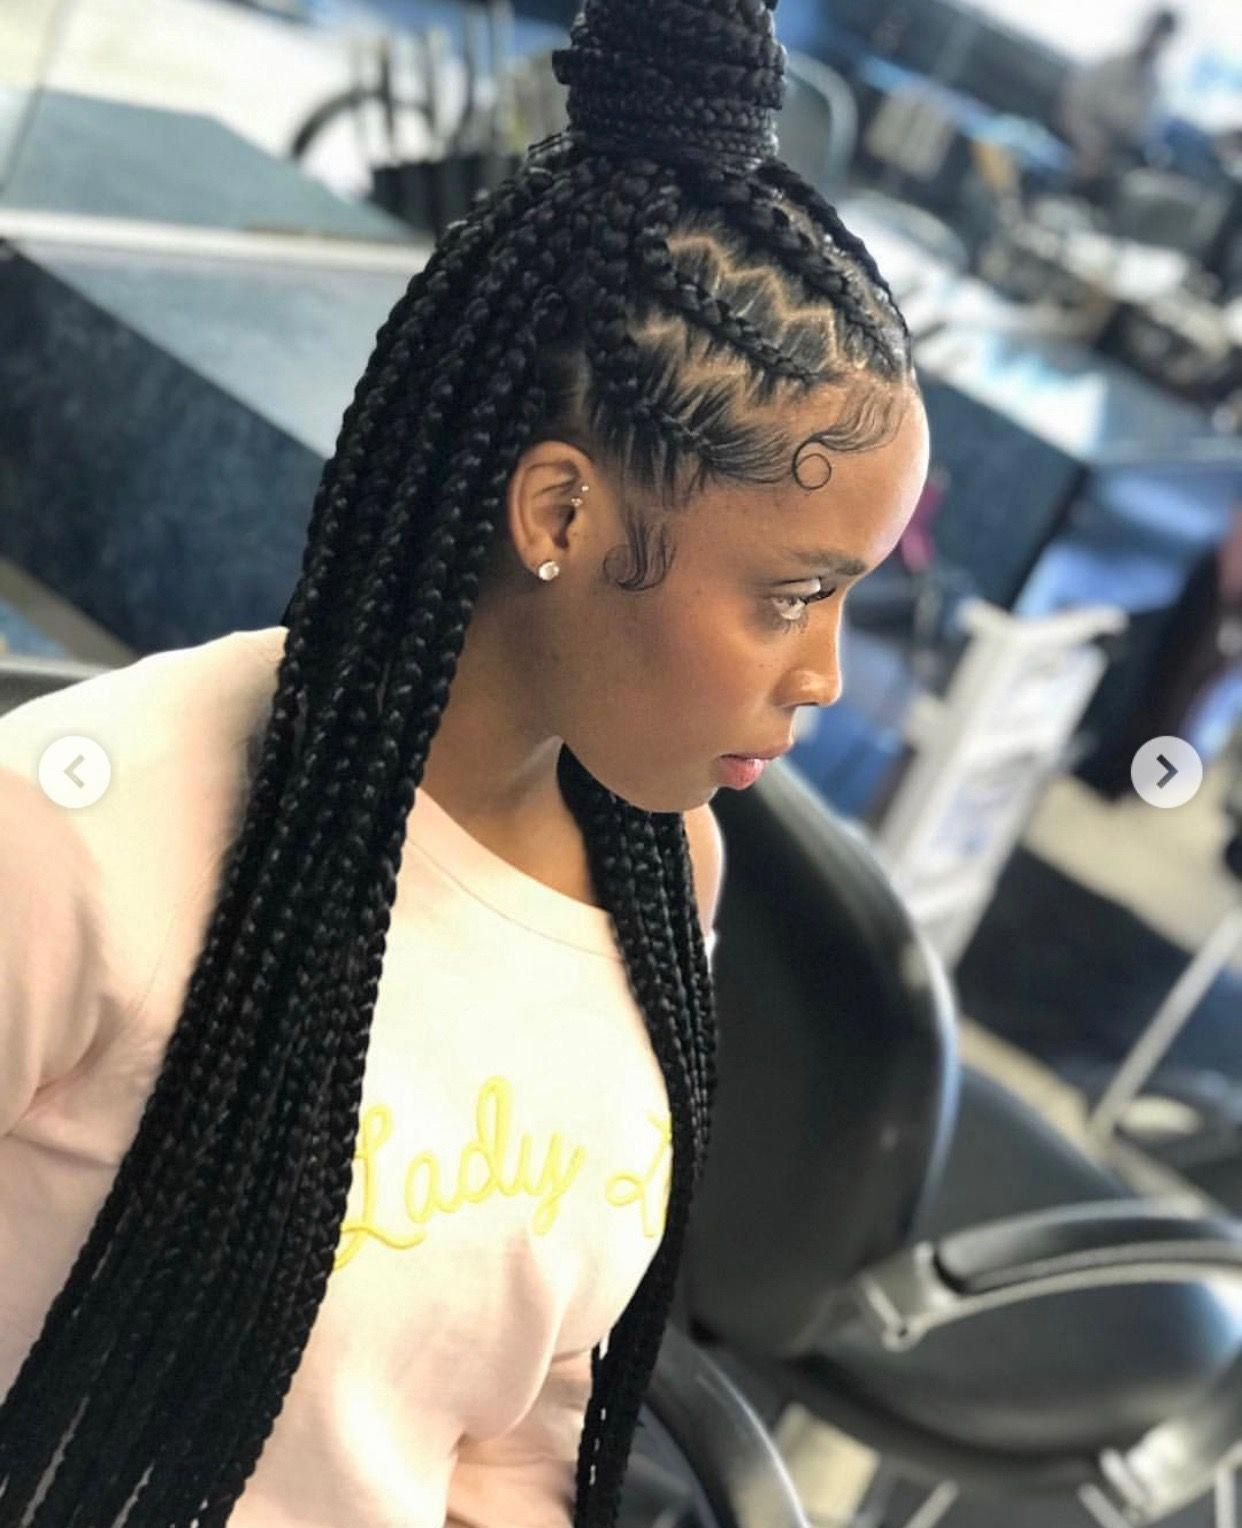 Braided Hairstyles African American Braidedhairstyles Feed In Braids Hairstyles Cornrows Braids For Black Women African Braids Hairstyles